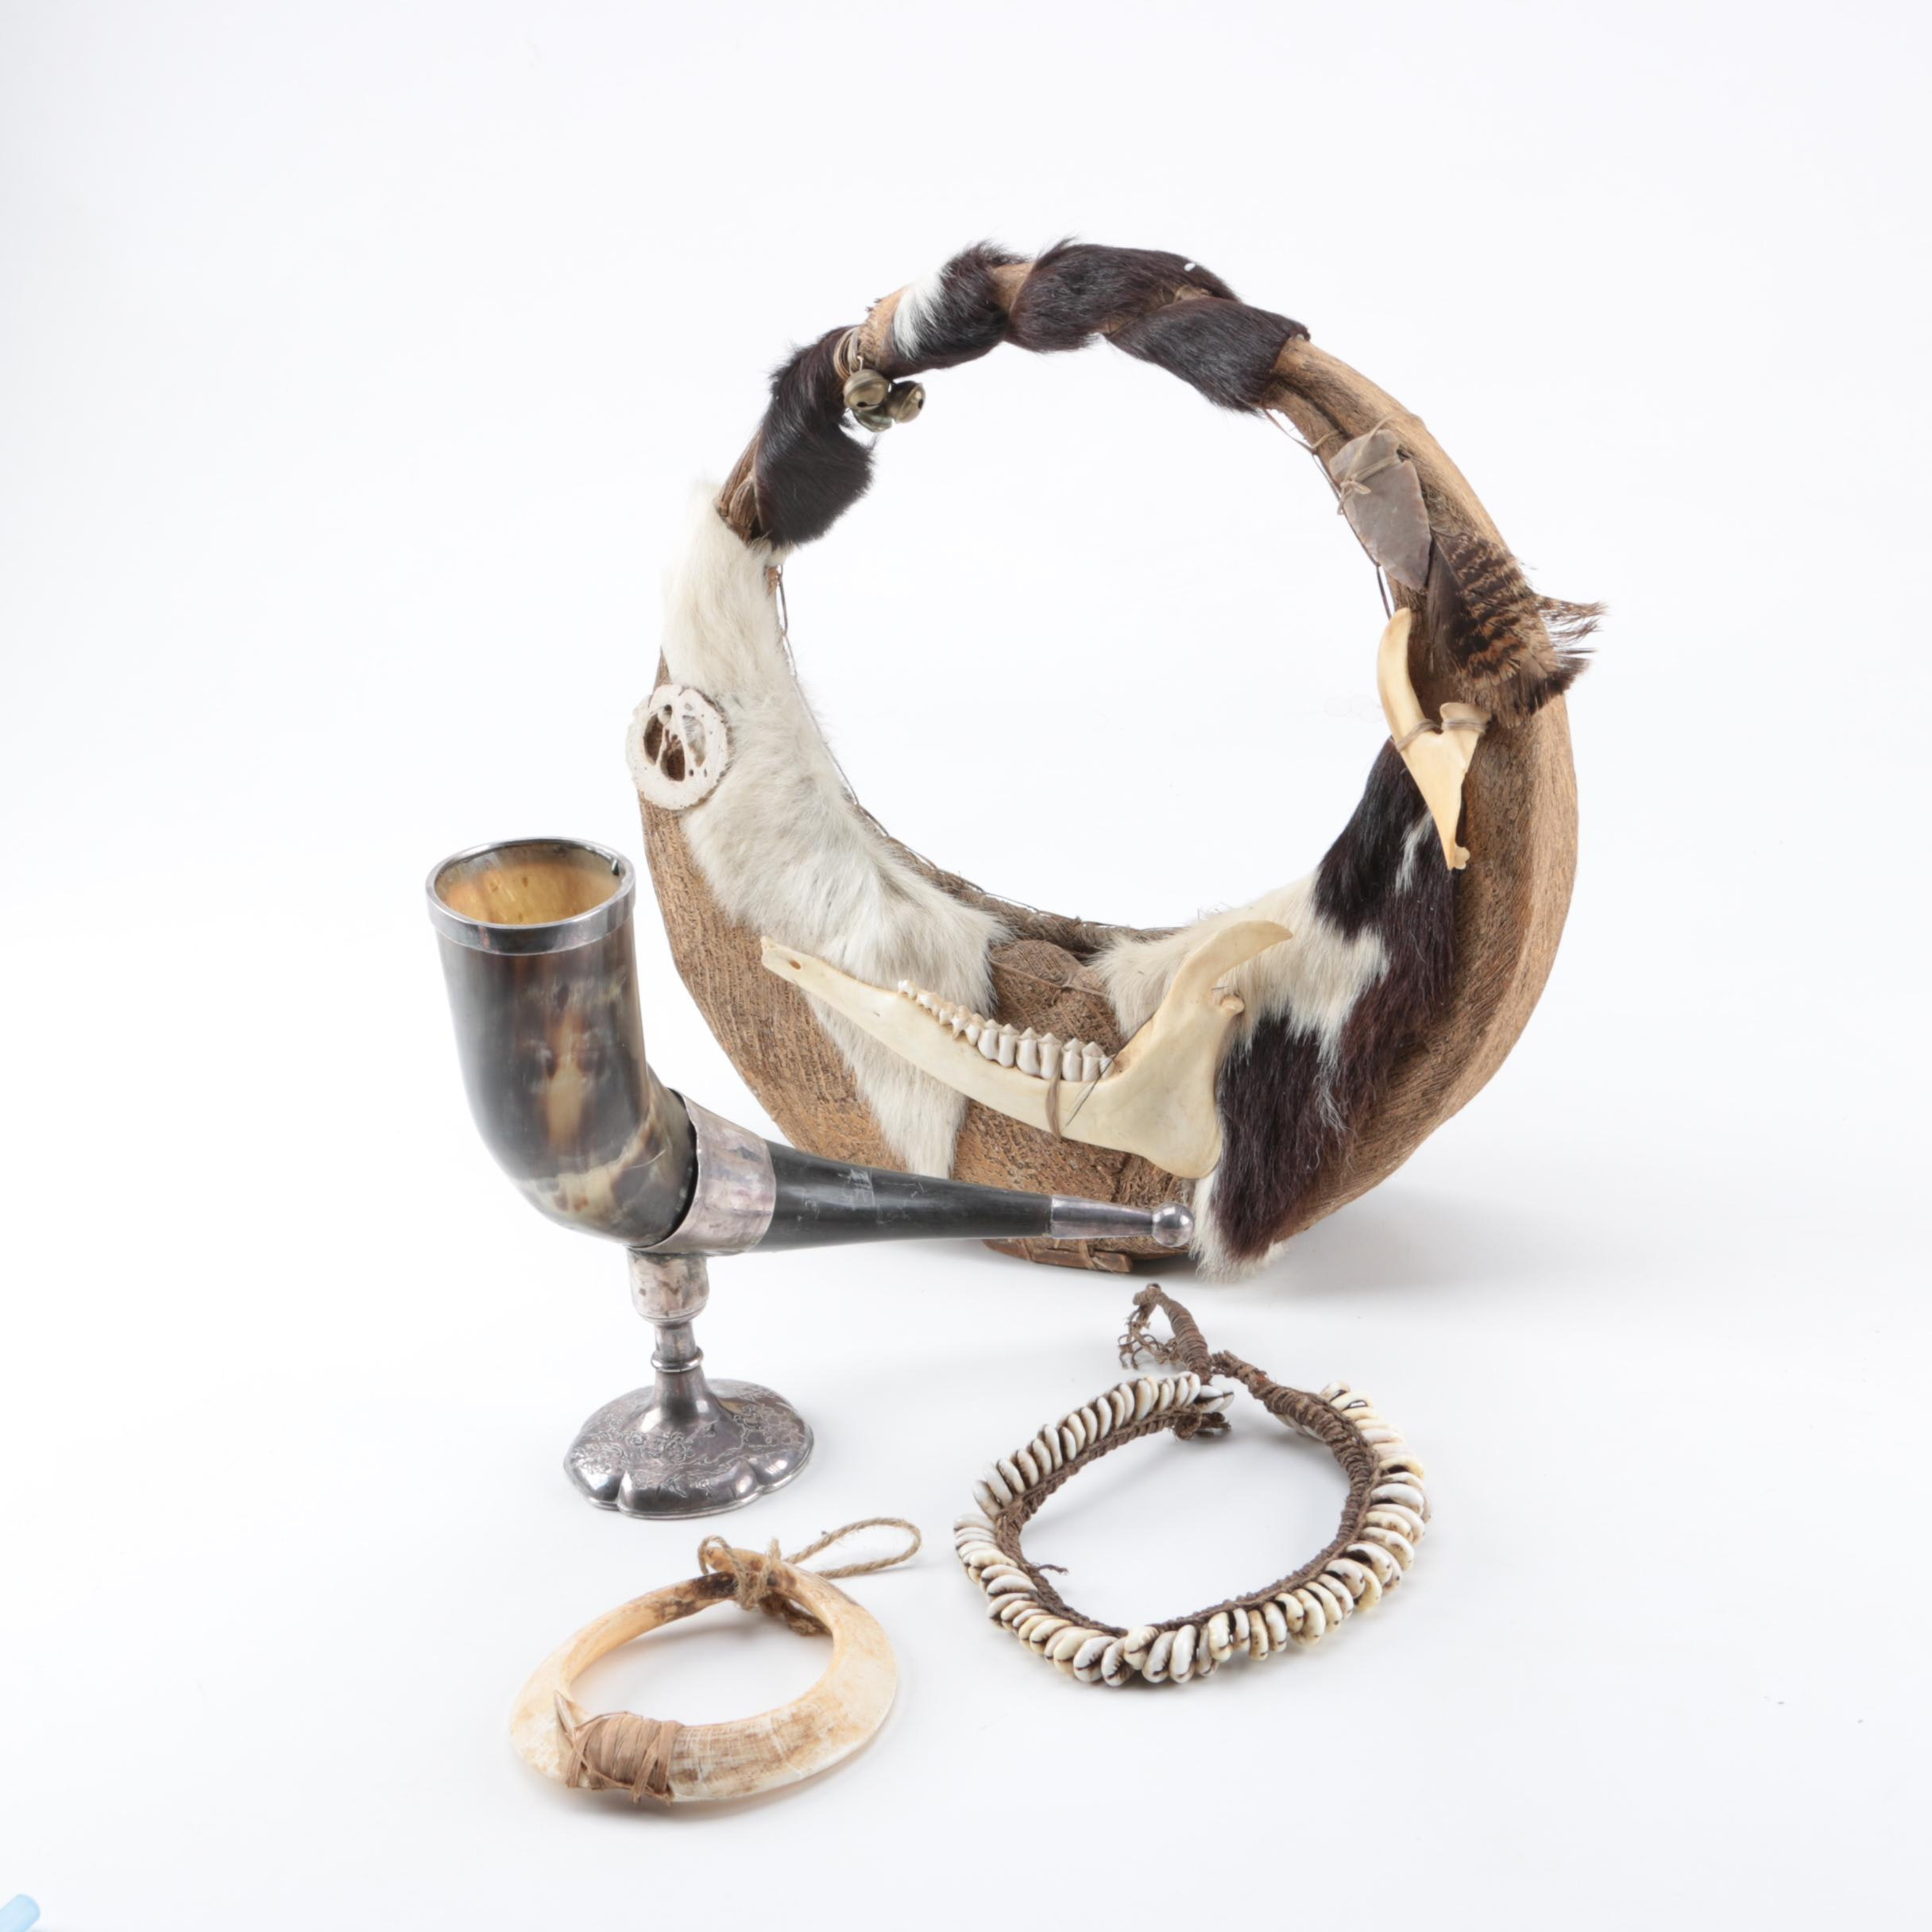 Horn and Fur Jewelry and Wall Decor